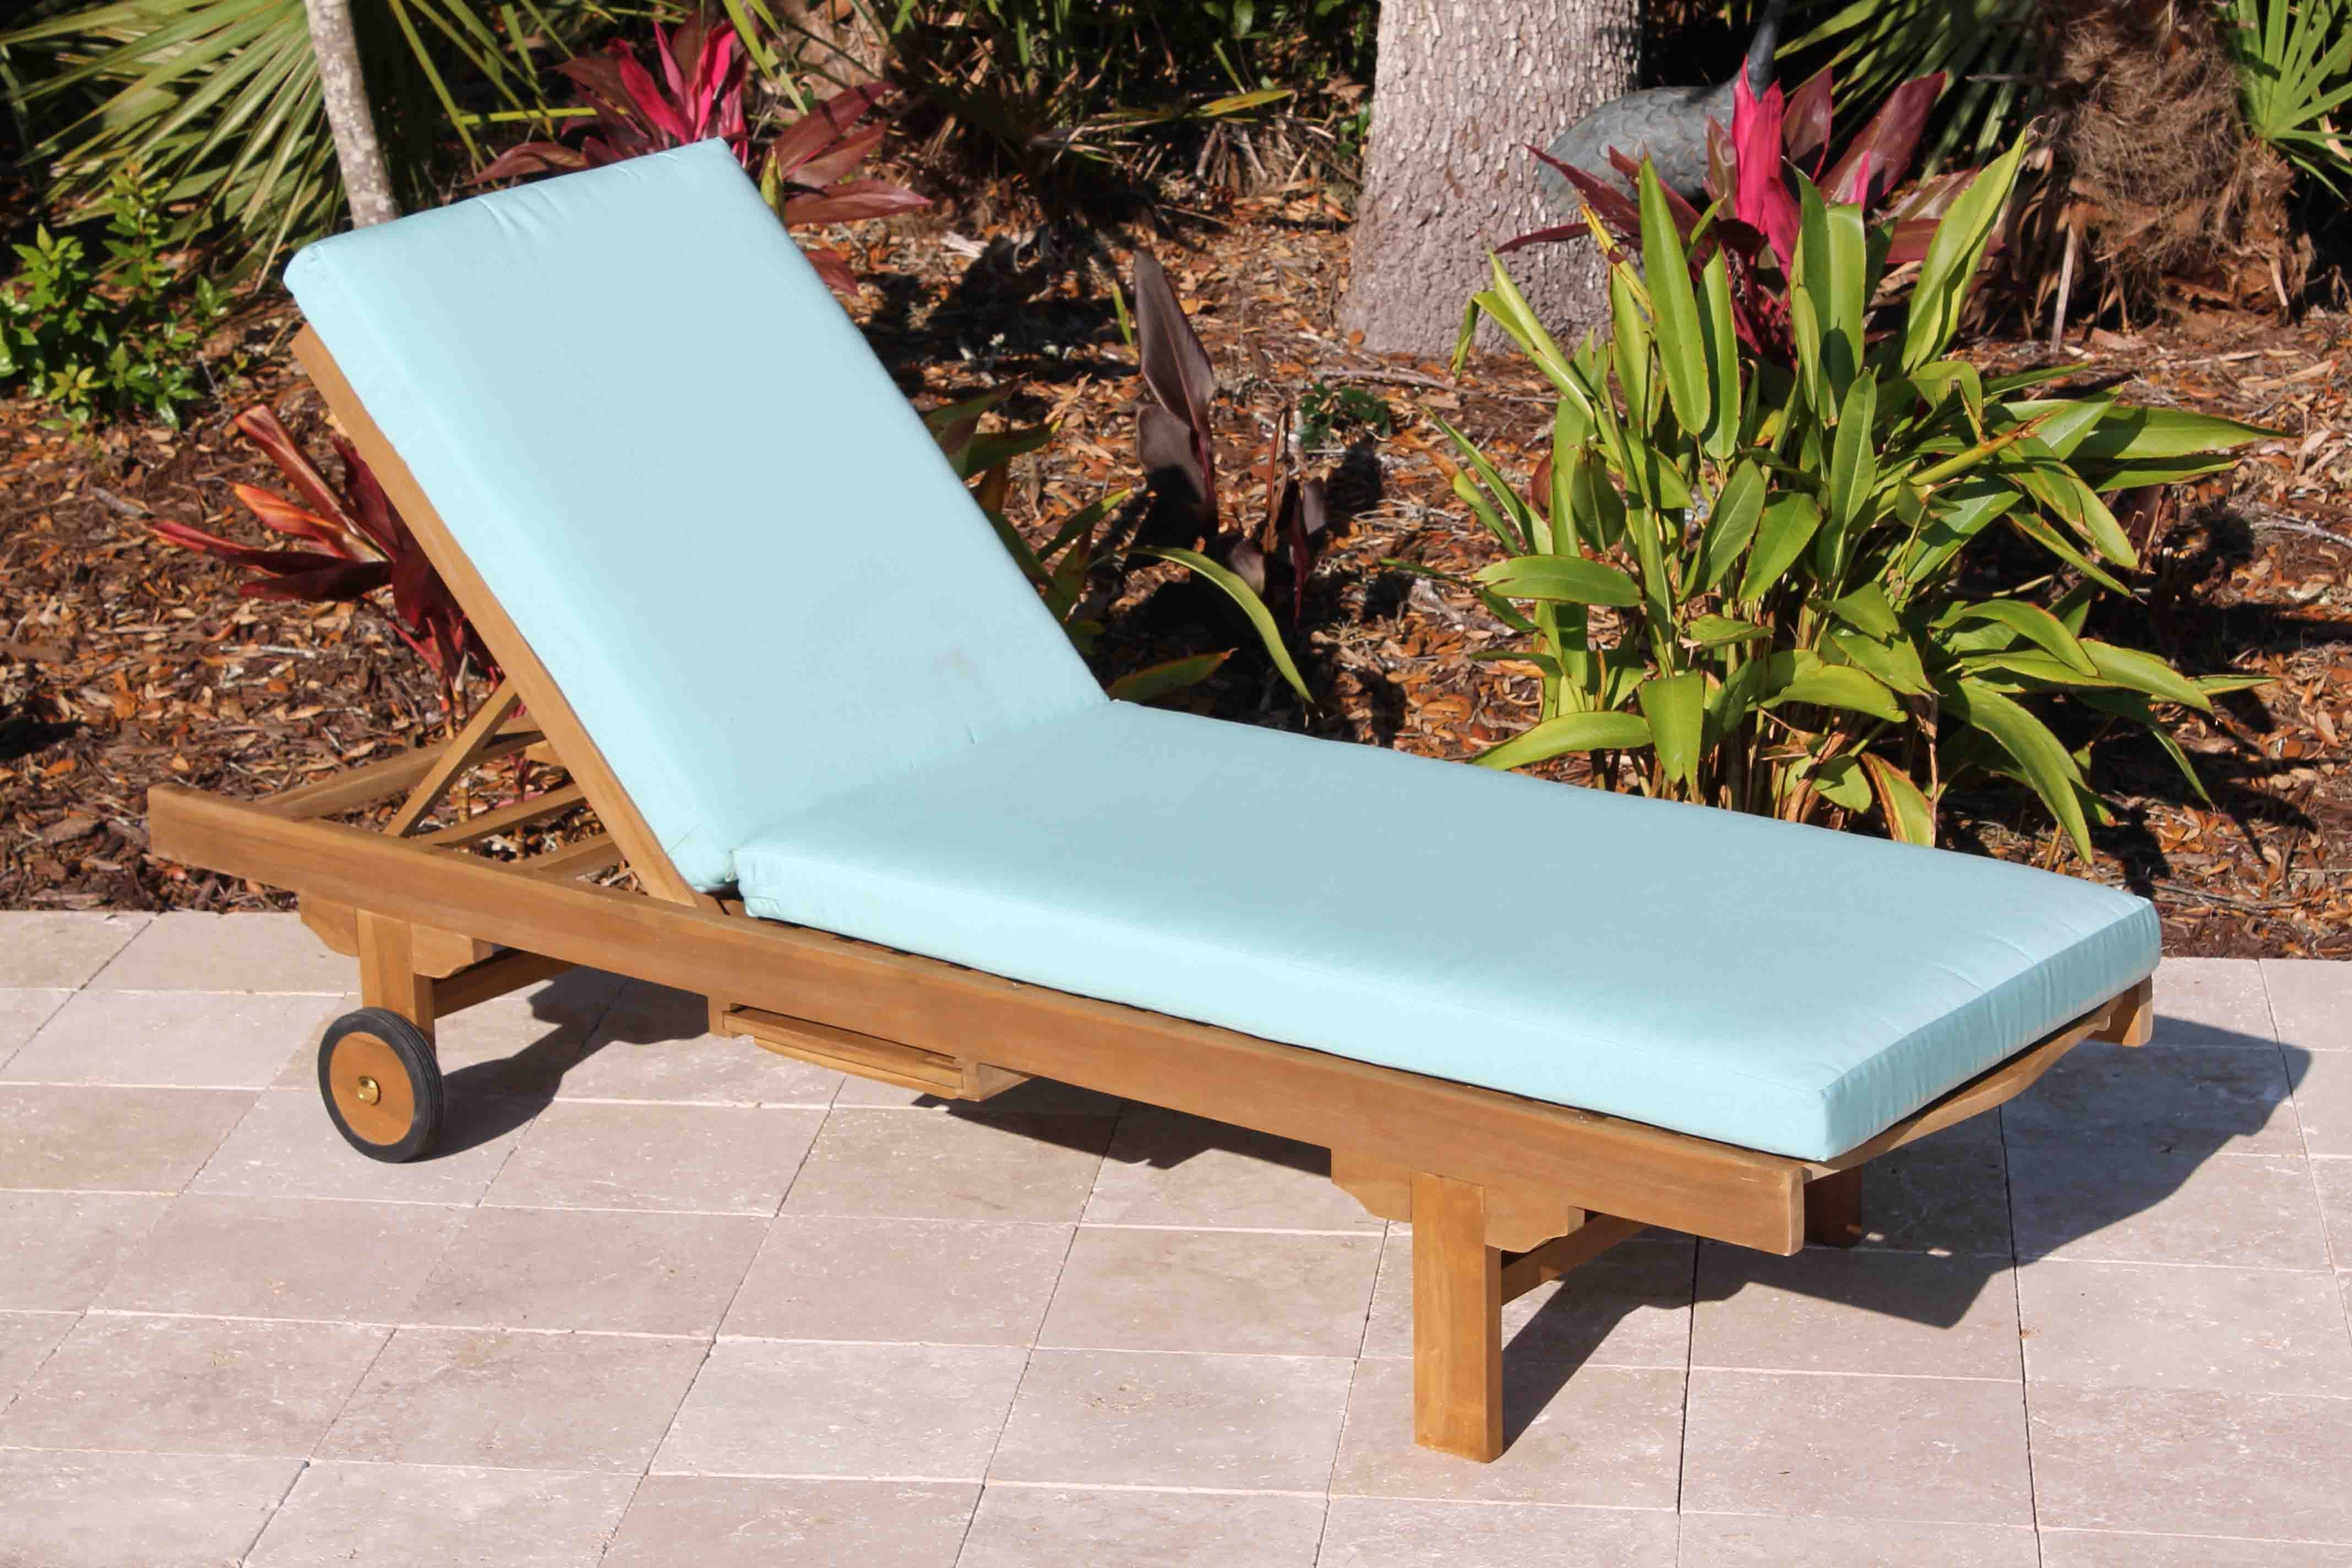 Teak Chaise Lounges Intended For Most Recently Released Sale Sunbrella Fabric Chaise Lounge Cushion (View 10 of 15)